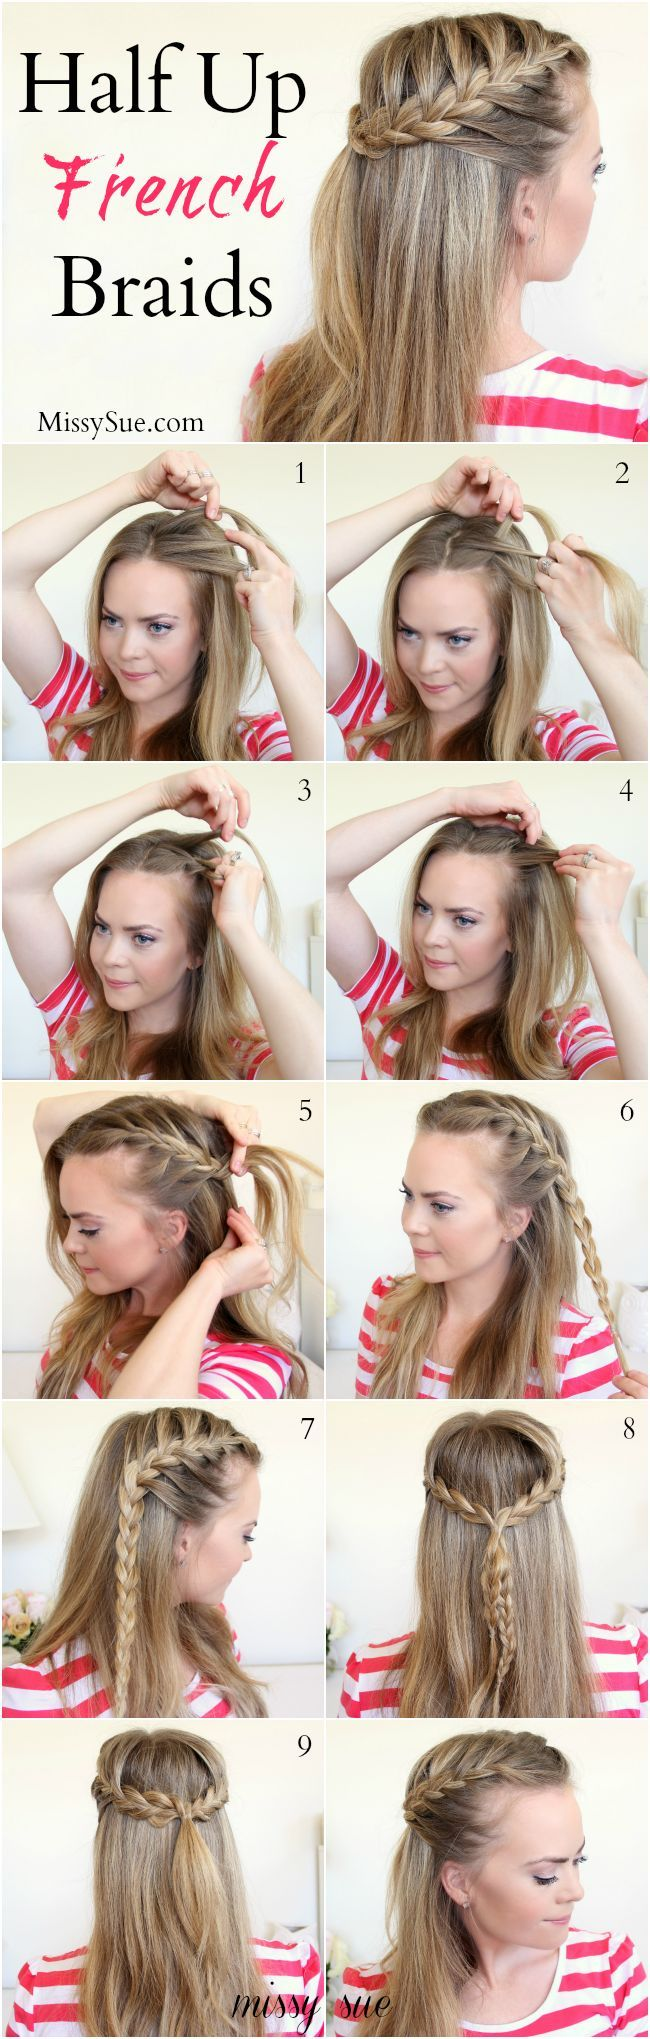 Eleven Half Up French Braids Really Pretty! Great Idea For School Hair #